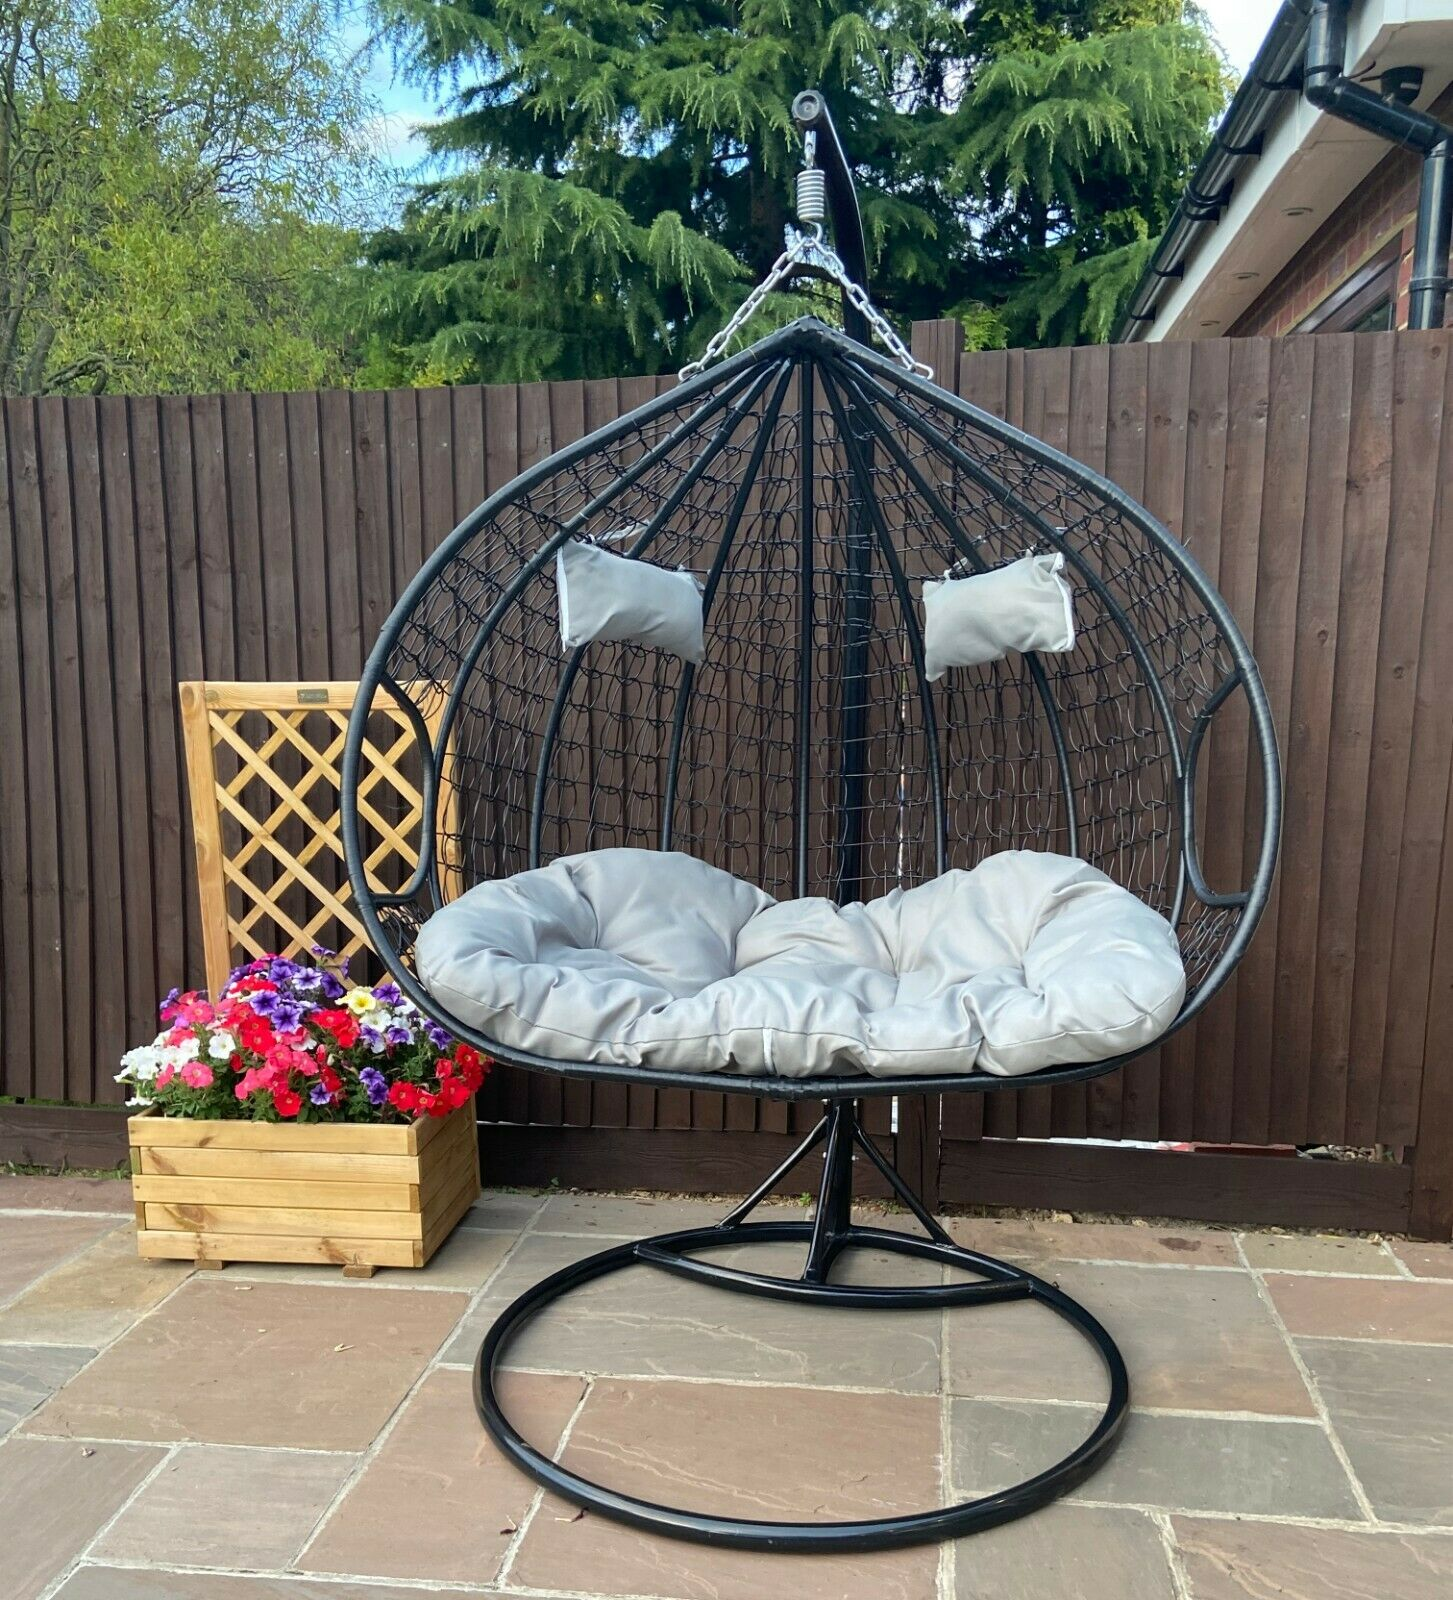 Brampton Deluxe Hanging Double Cocoon Chair For Sale Ebay